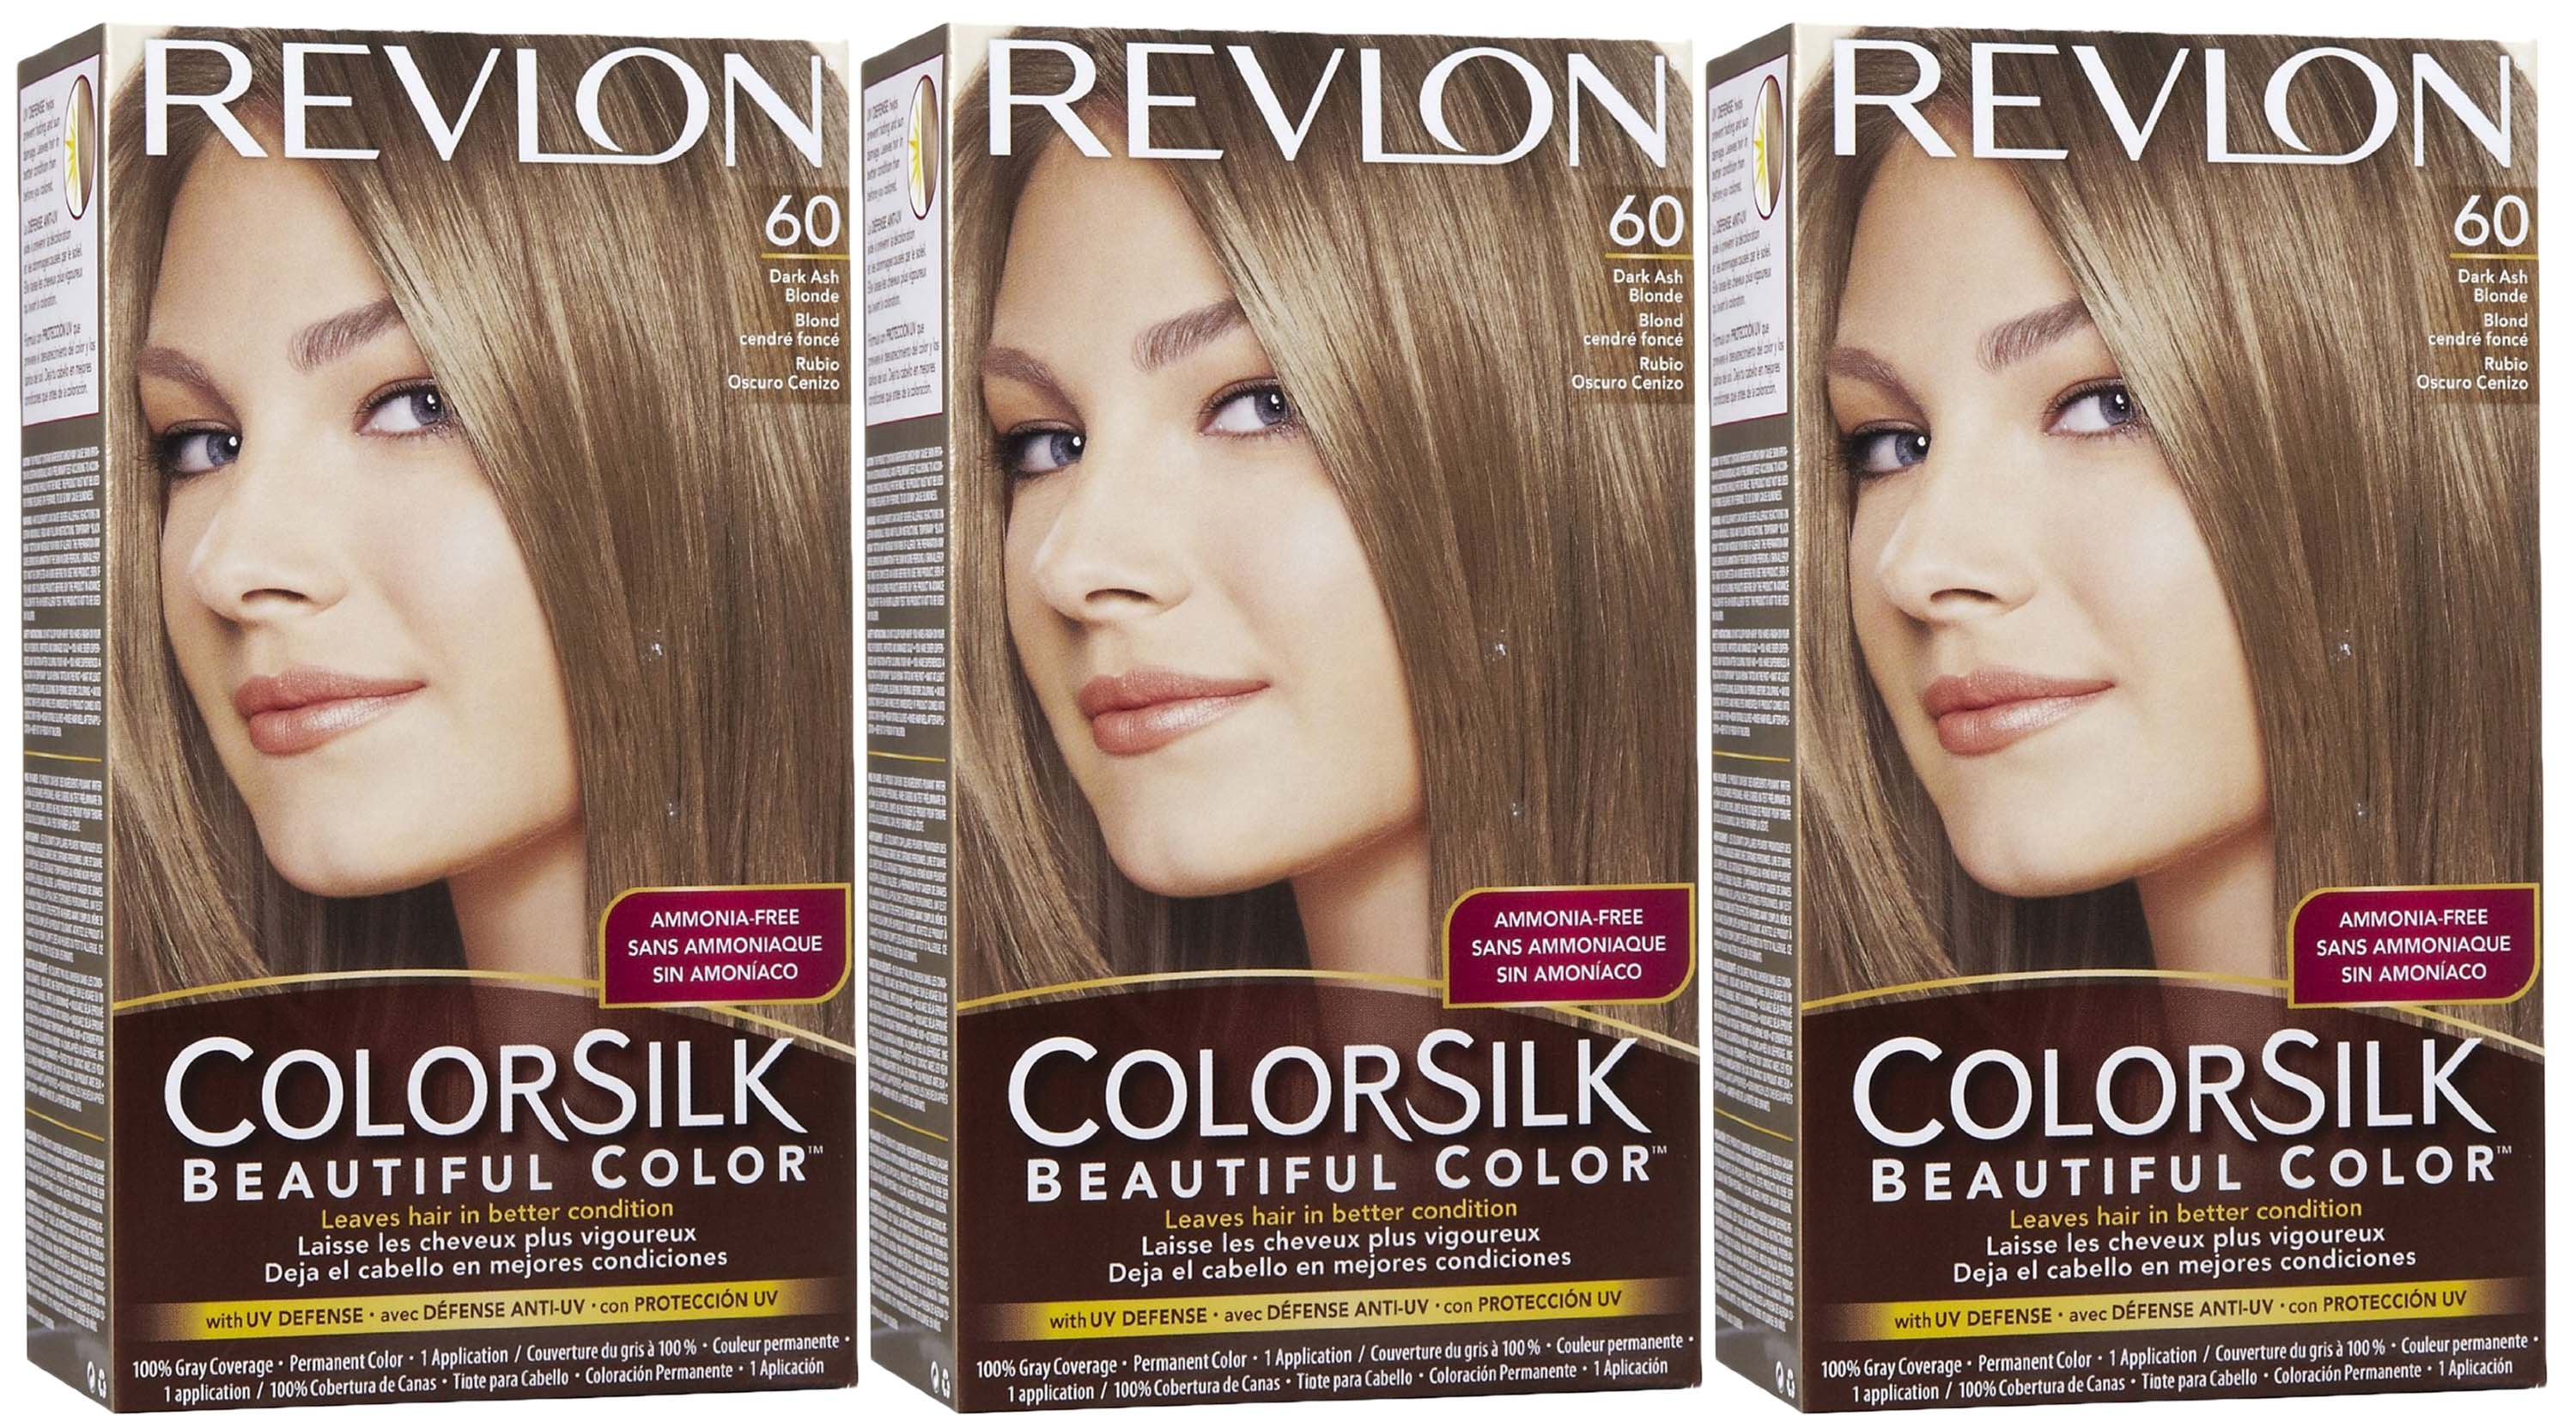 3 Revlon Colorsilk Beautiful Permanent Color 60 Dark Ash Blonde No ...